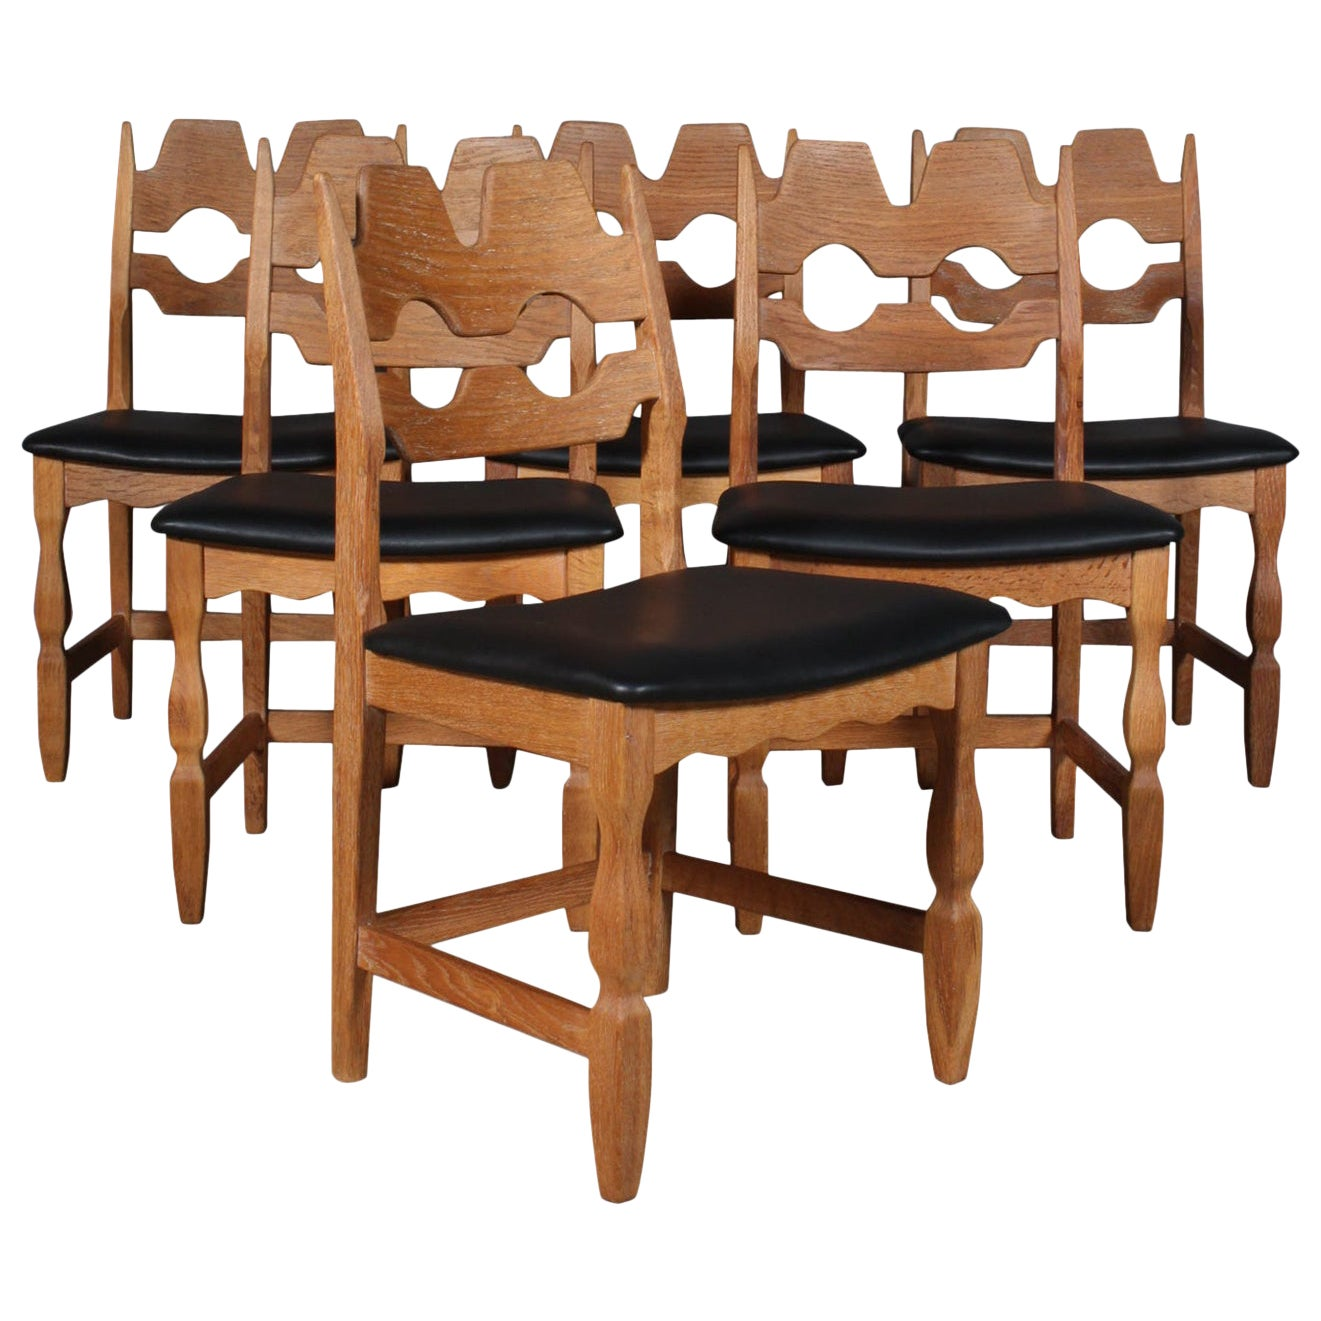 Dining Chairs by Henning Kjærnulf